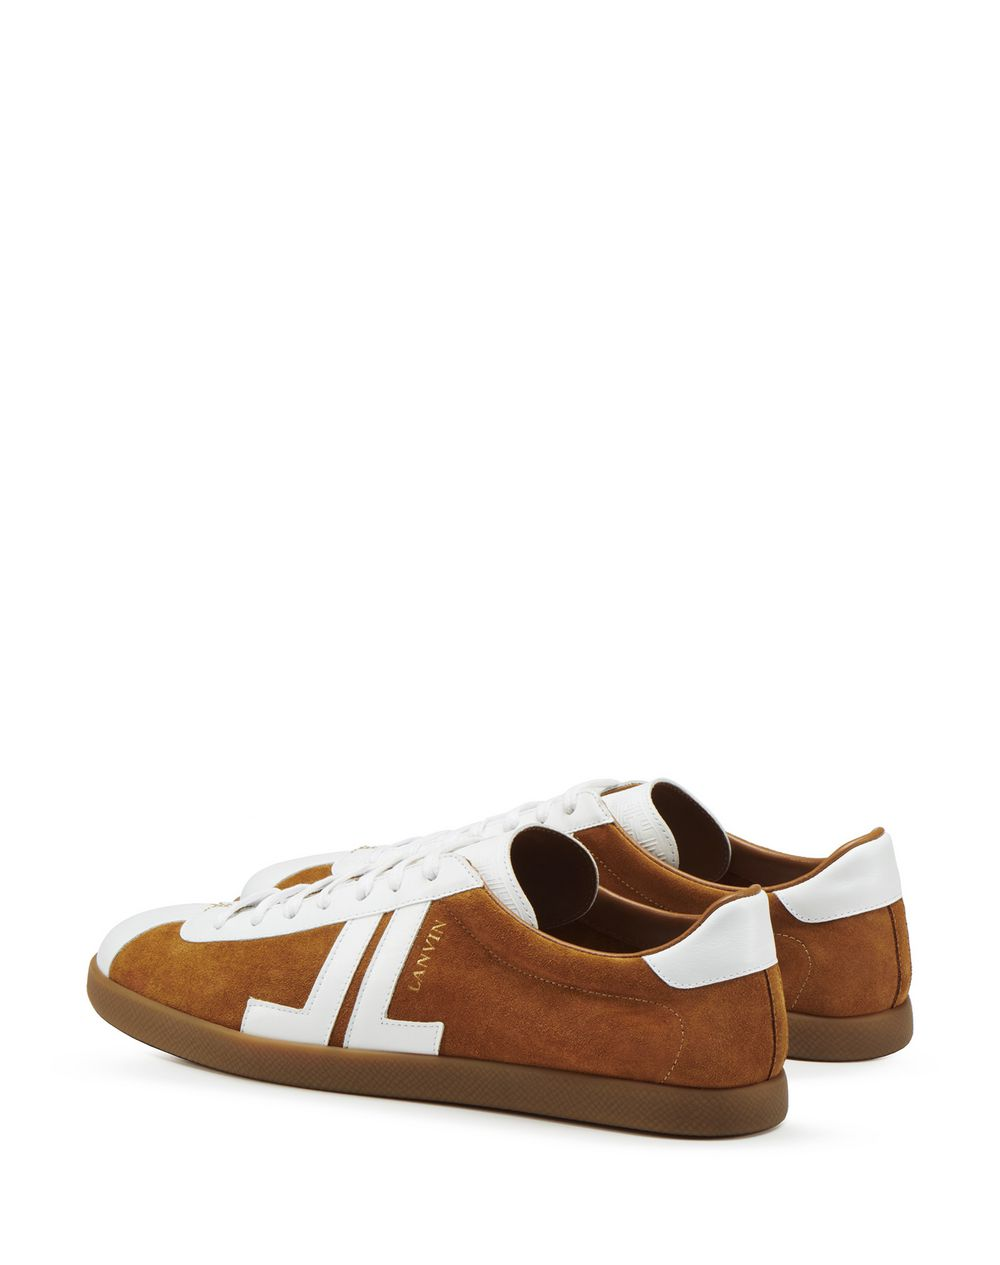 DUAL-MATERIAL JL LOW-TOP SNEAKERS - Lanvin